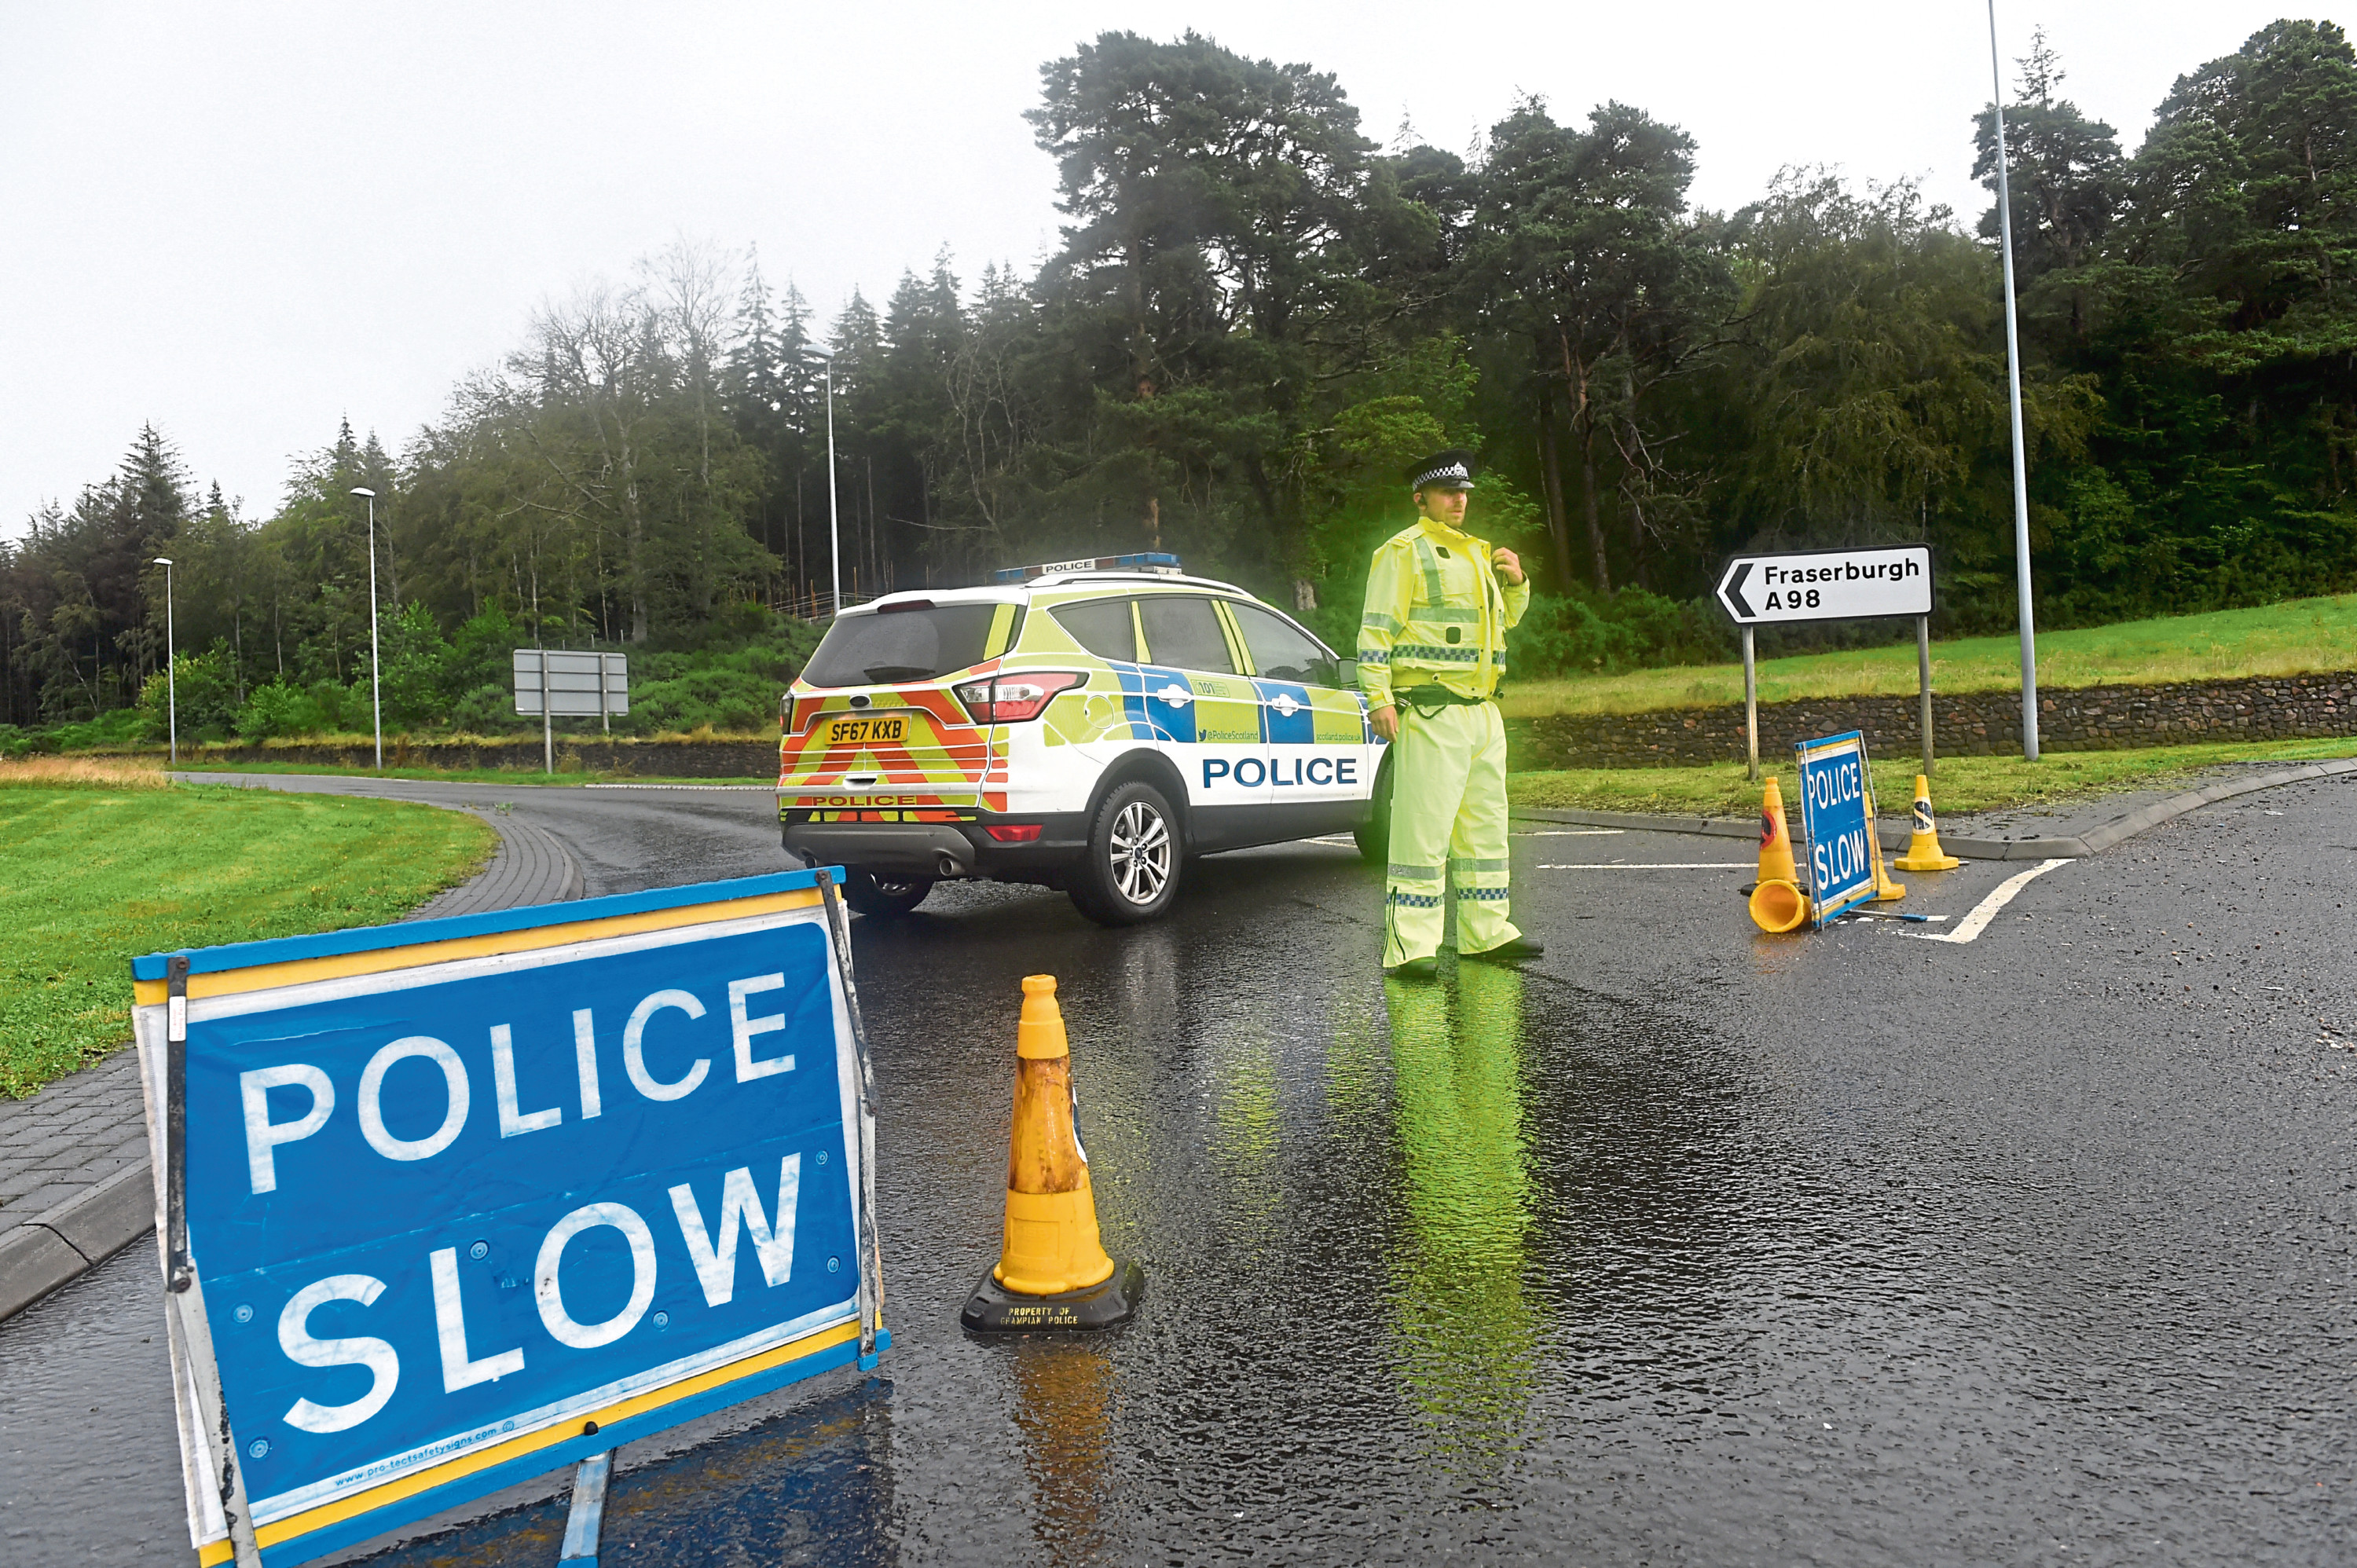 Police at the scene of the accident on the A98